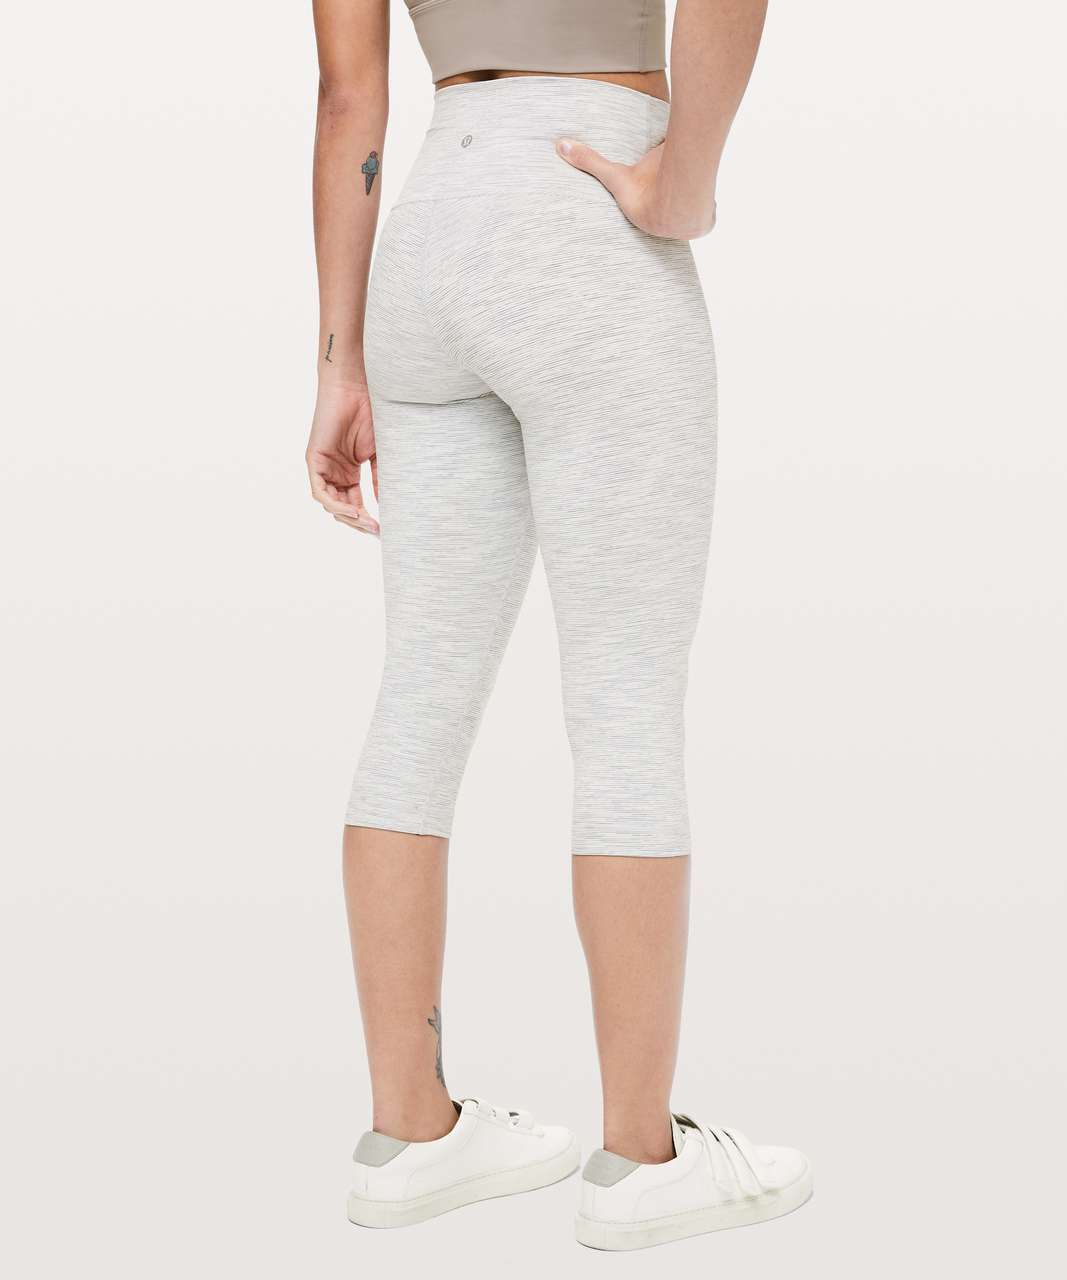 "Lululemon Wunder Under High-Rise 1/2 Tight *Luxtreme 17"" - Wee Are From Space Nimbus Battleship"